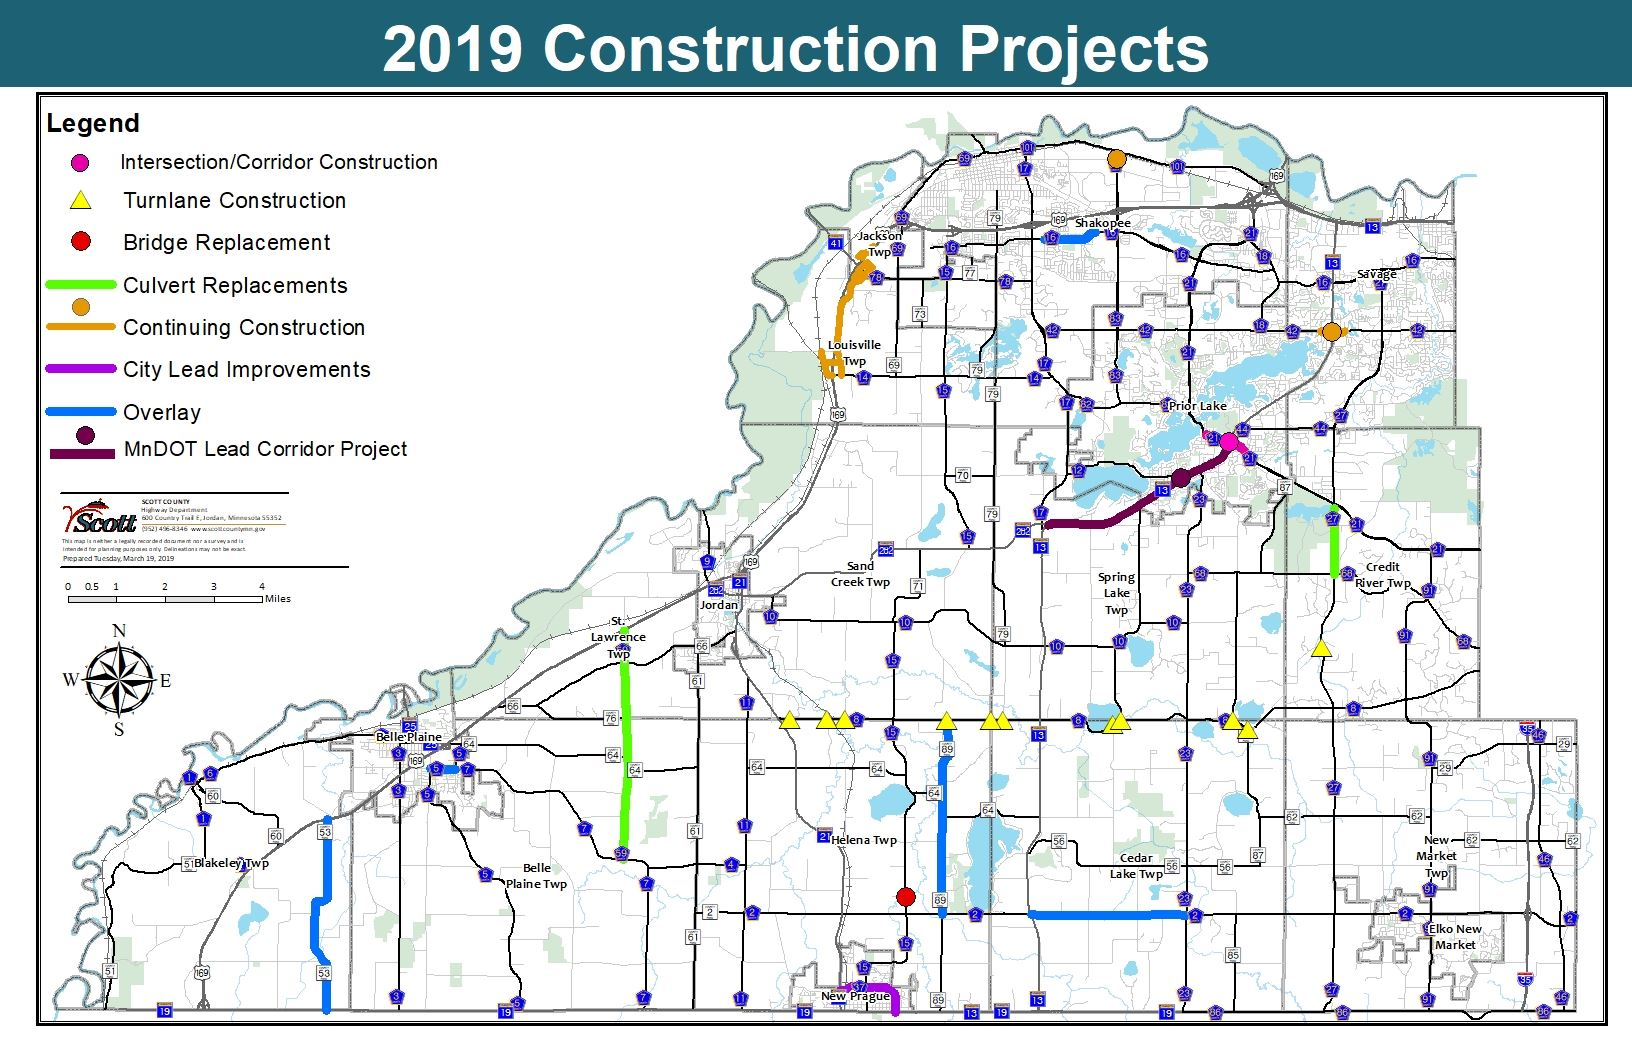 2019 Construction Projects